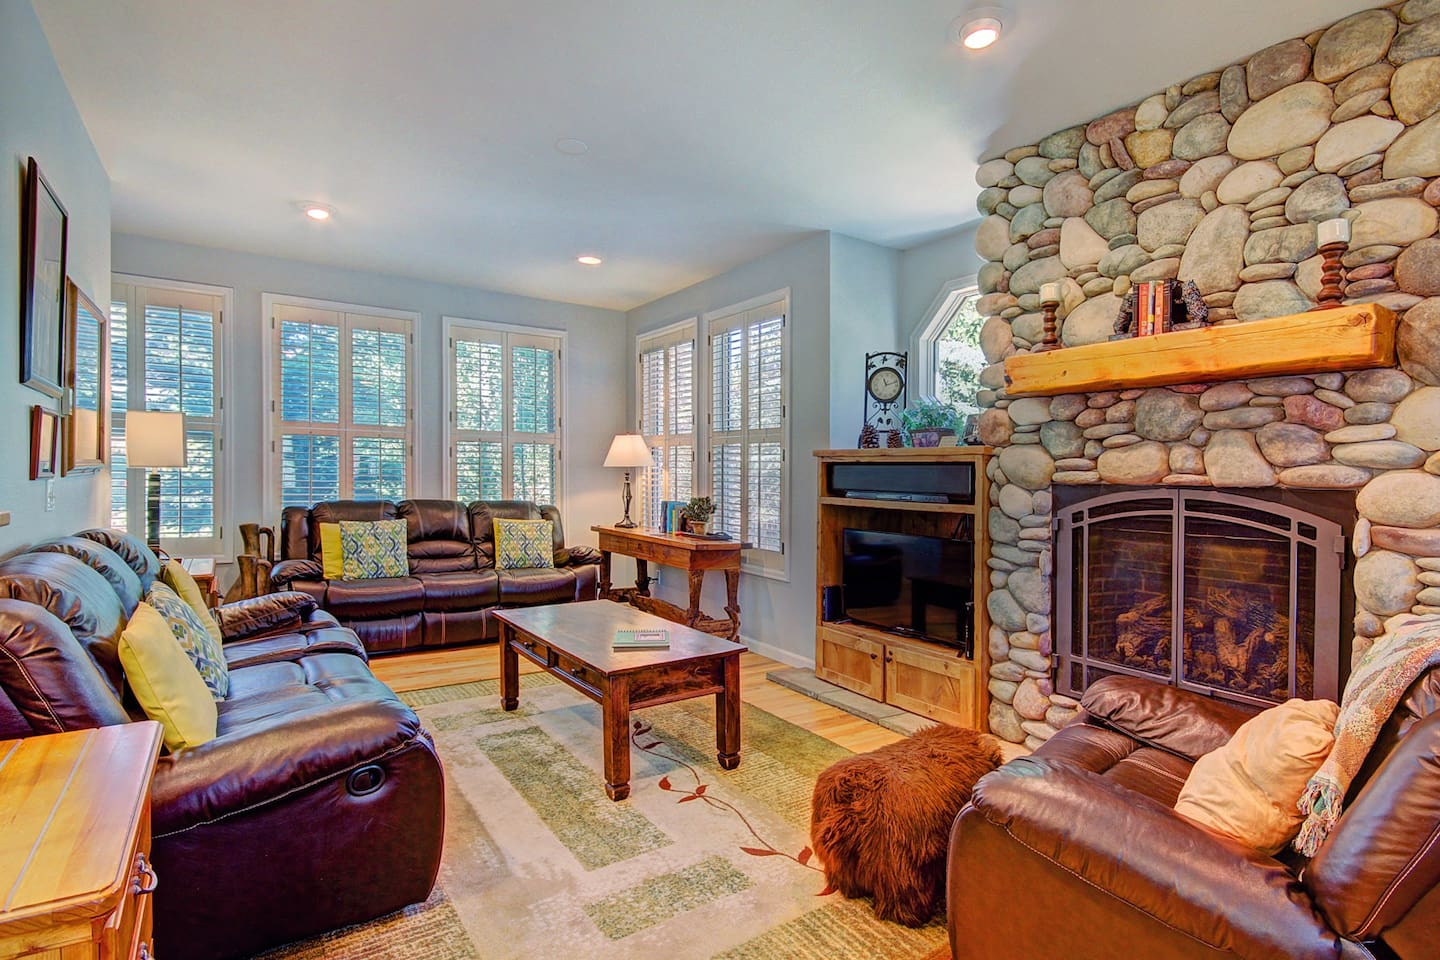 Bear Pine Chalet - a SkyRun Breckenridge Property - Stay warm and cozy by the elegant gas fireplace